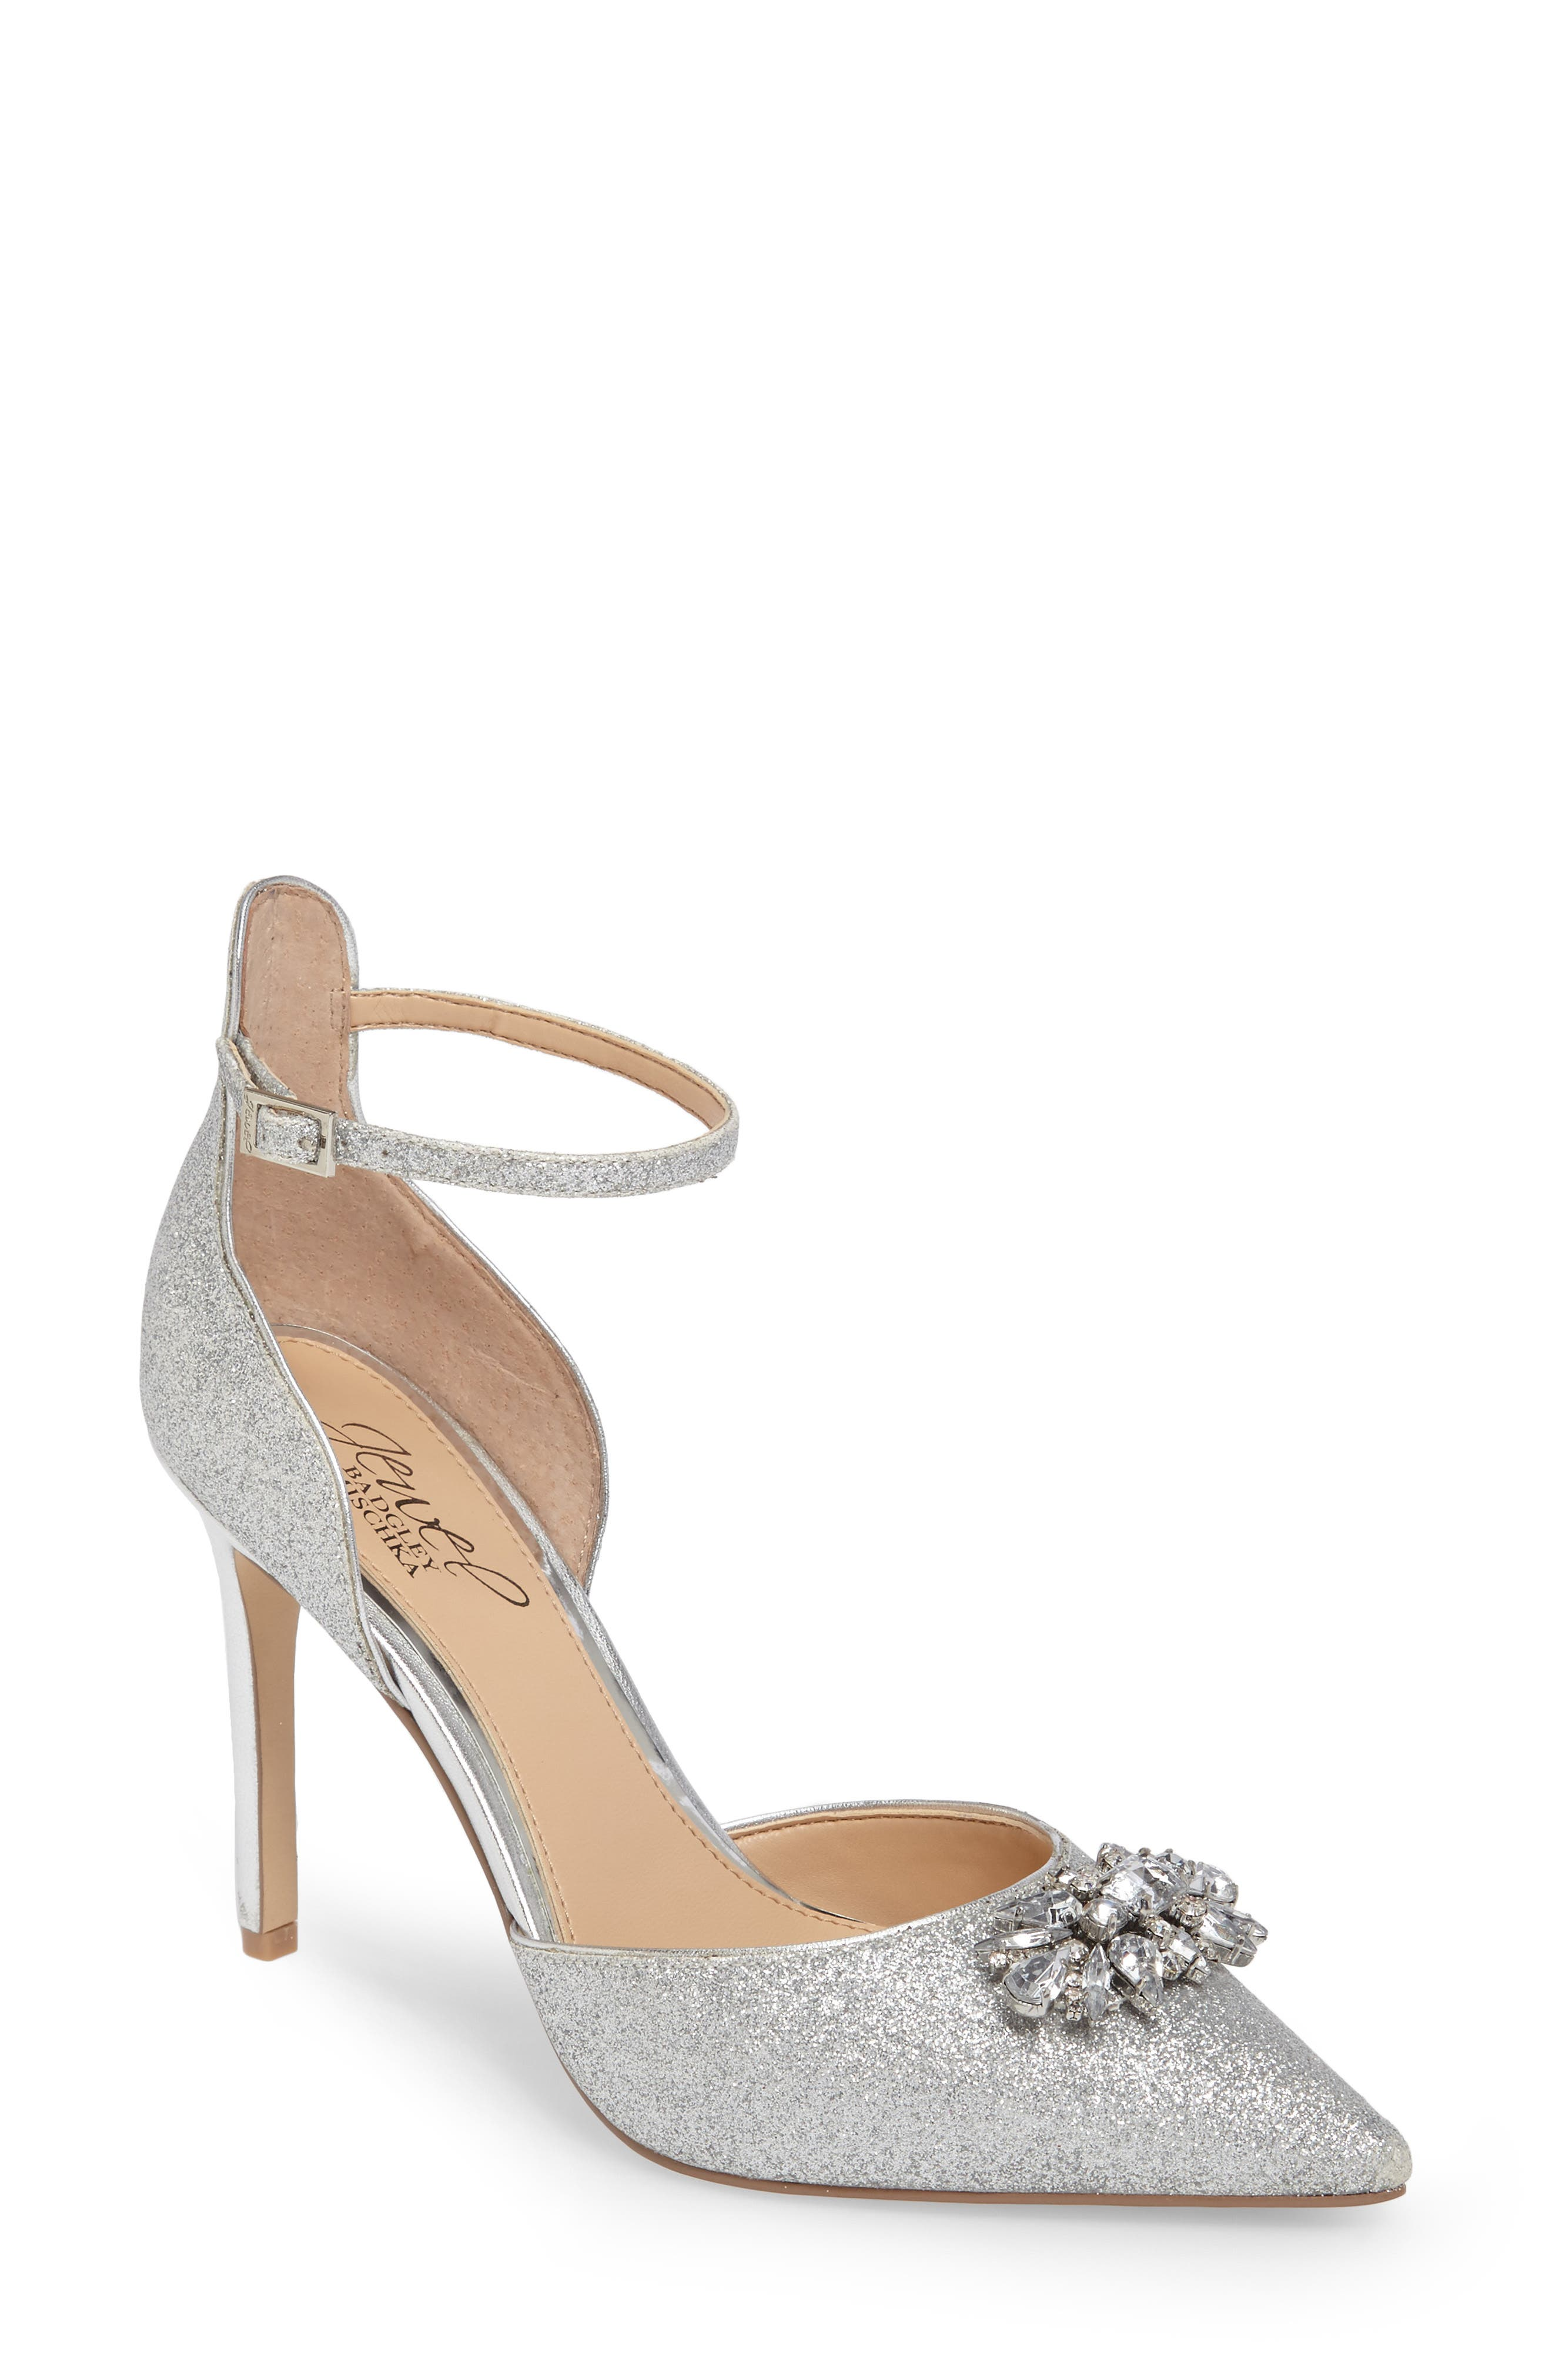 JEWEL BADGLEY MISCHKA Lea II DOrsay Pump